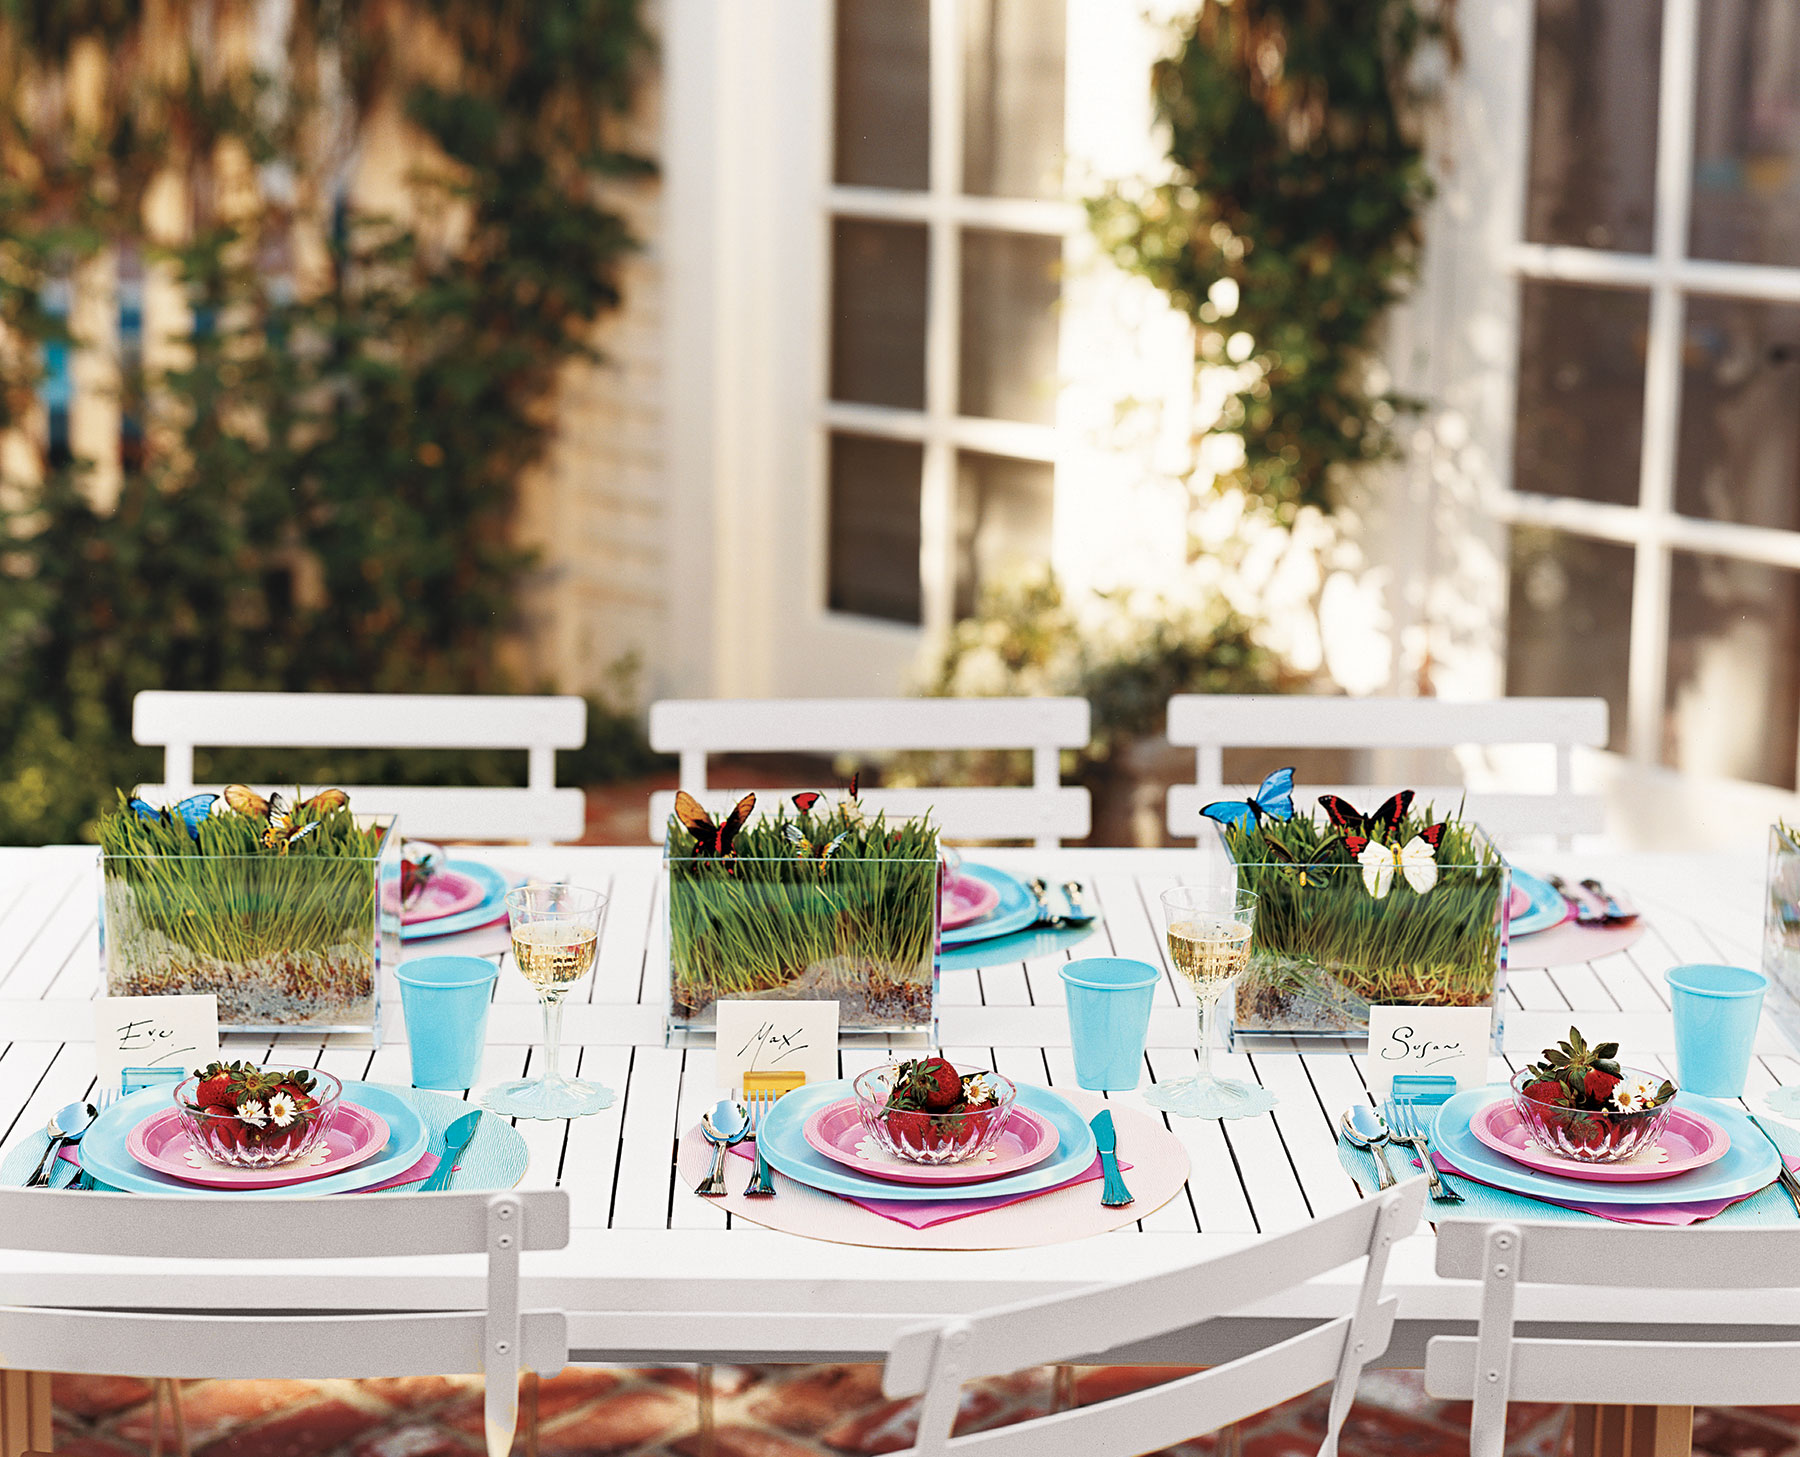 Summer outdoor dining table with all-plastic setup